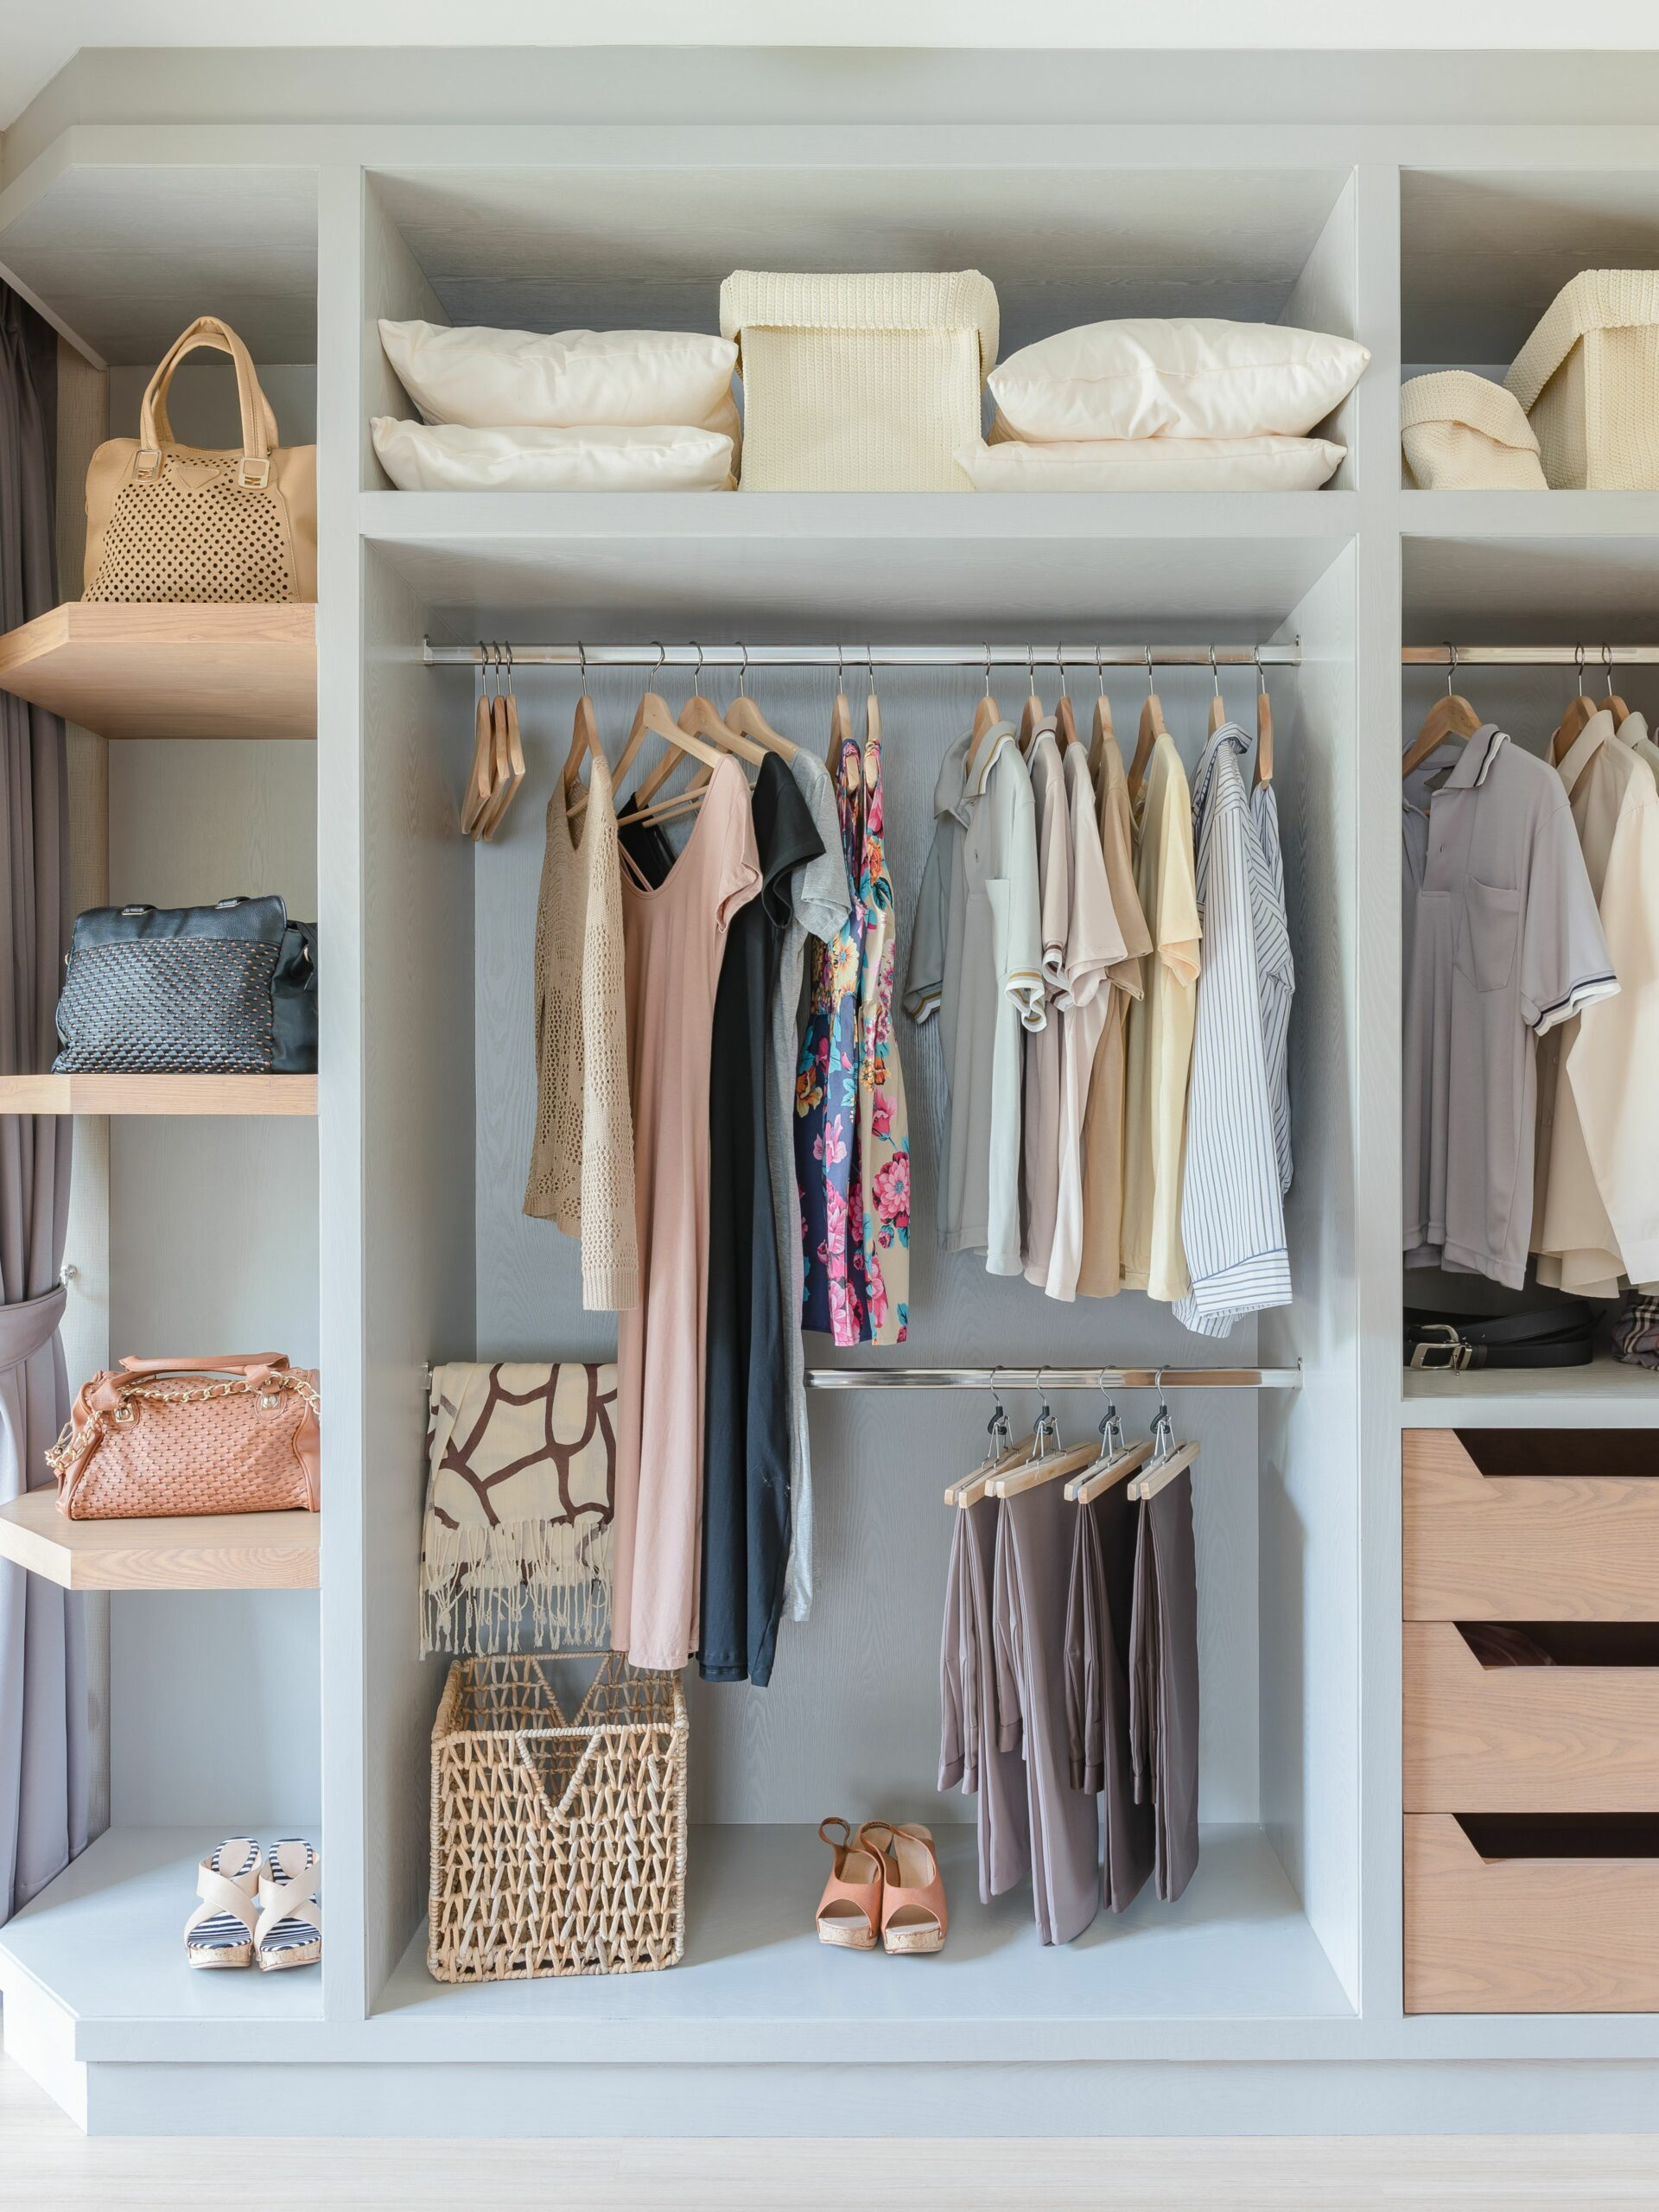 10 Best Closet Organization Ideas to Maximize Space and Style ..